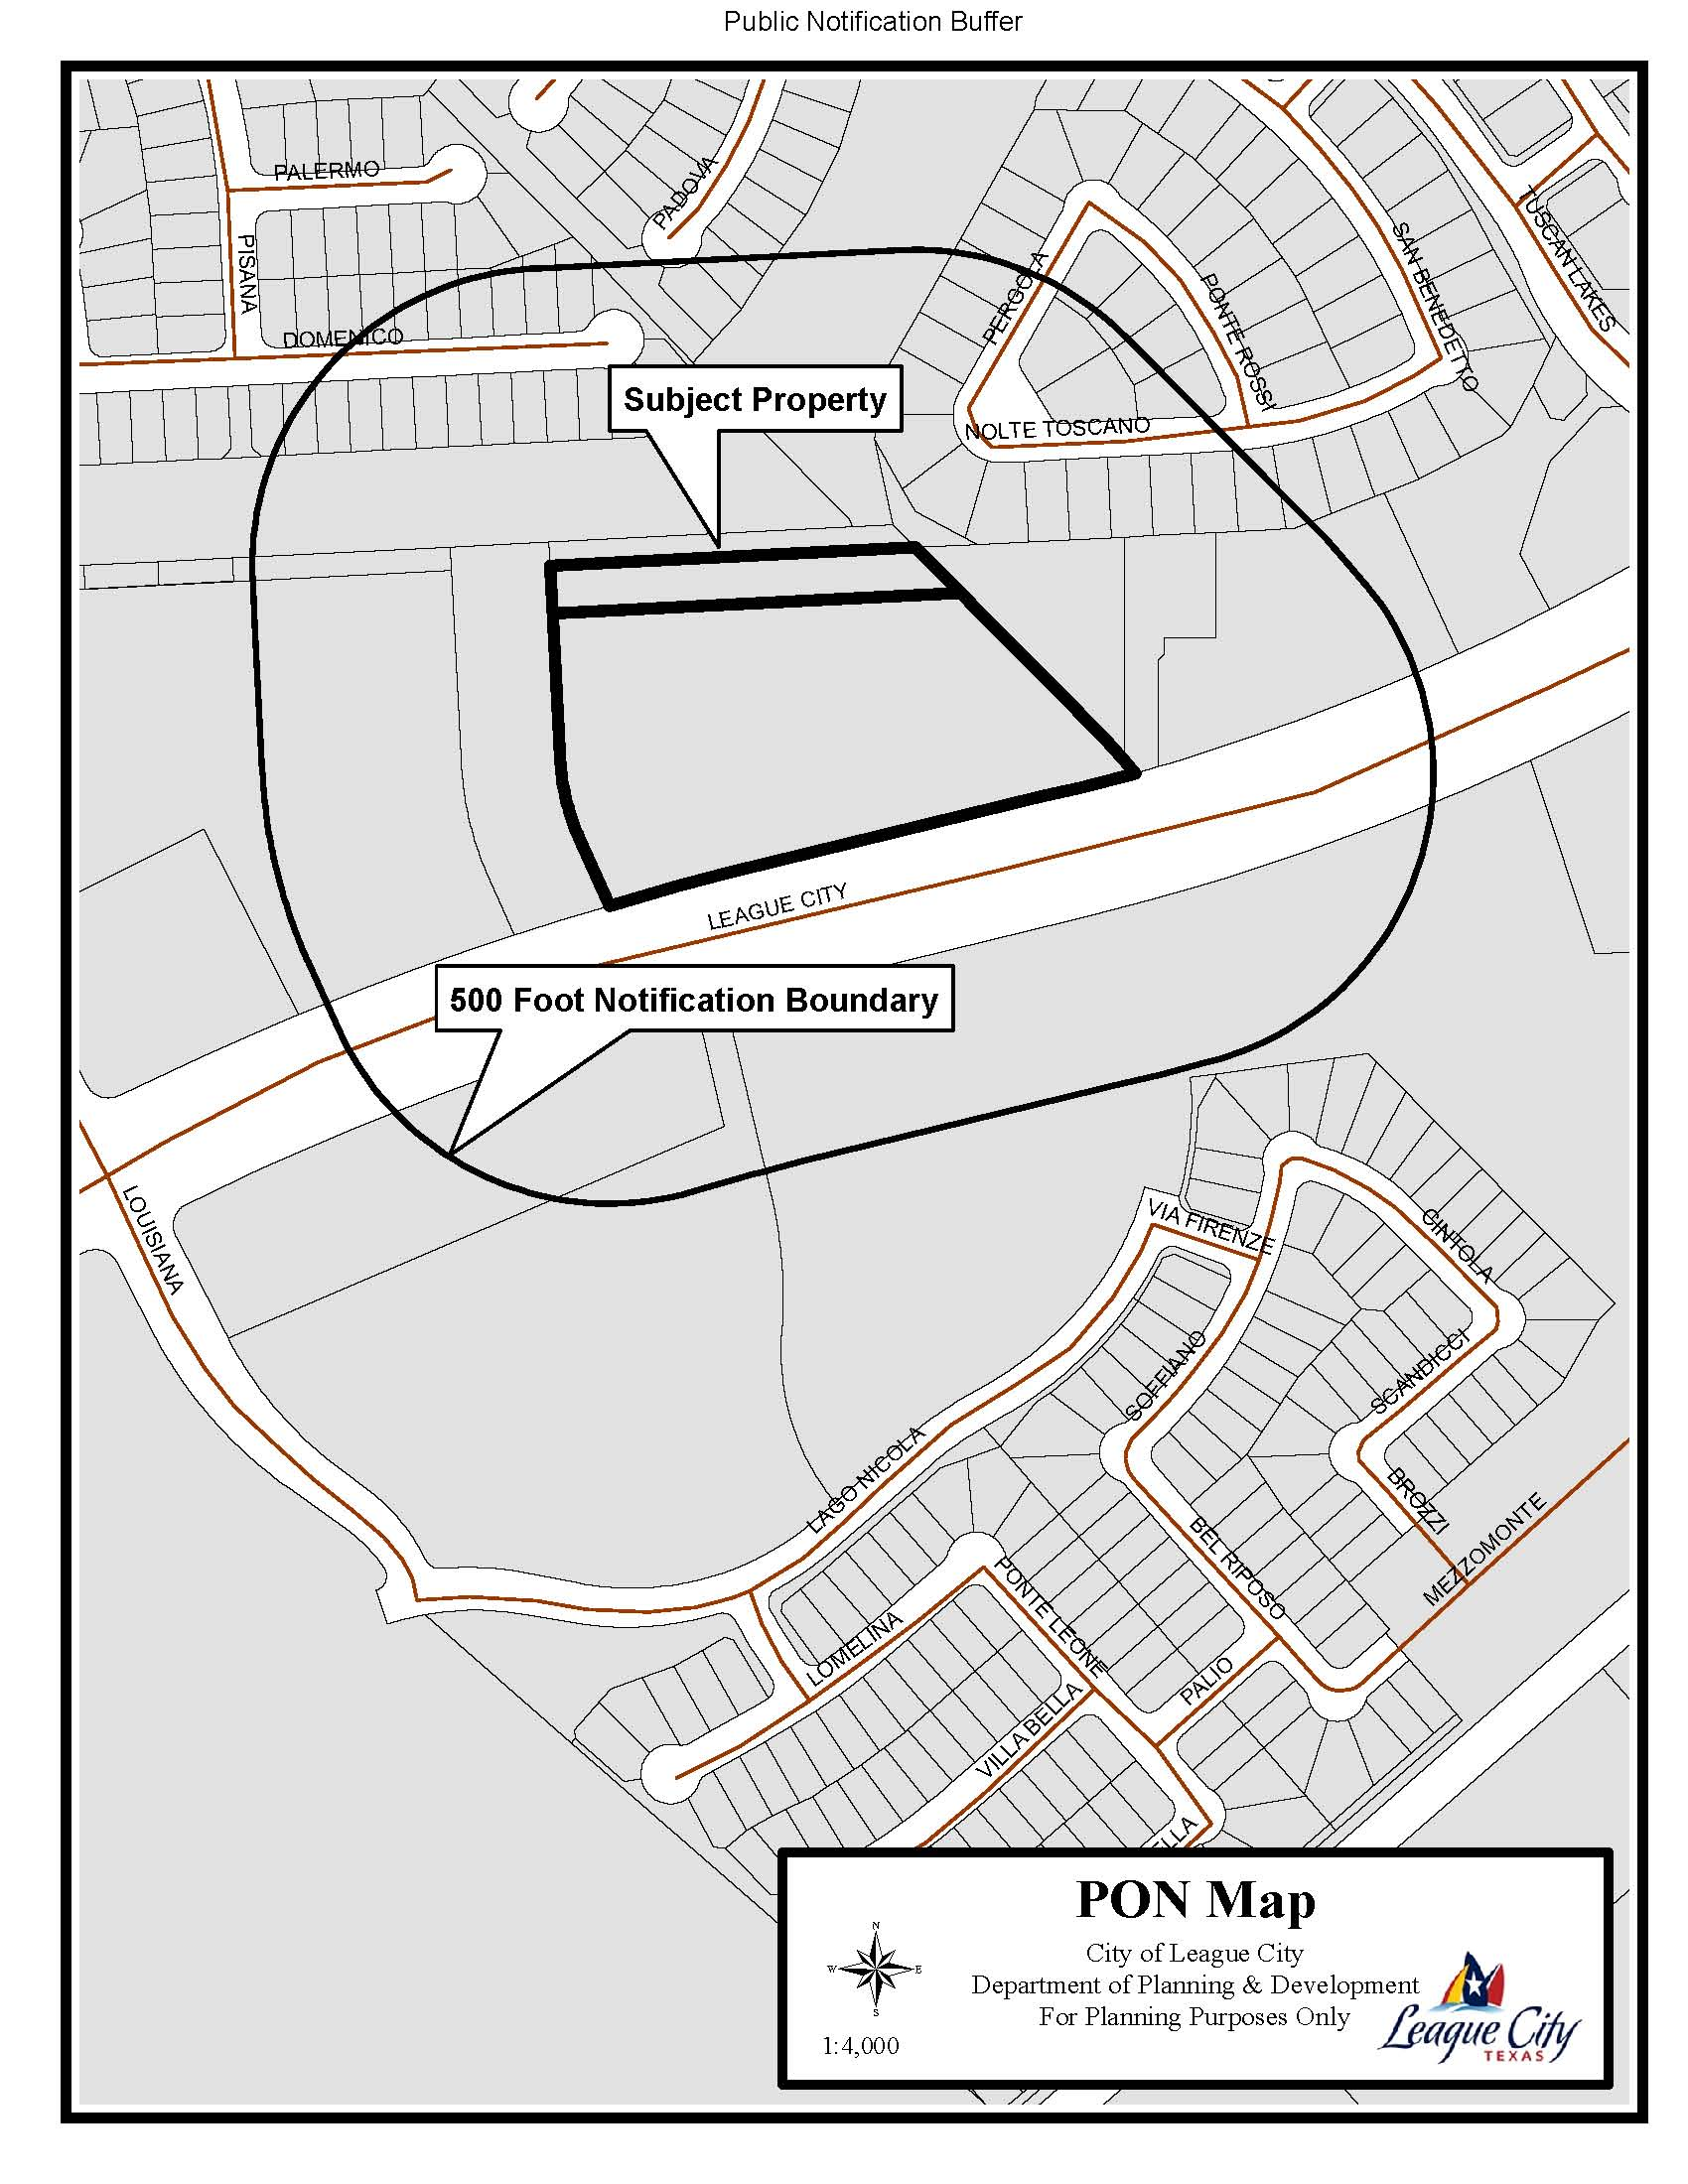 Z15-07 (Kingwood [Tuscan Lakes] CGR Amendment) Zoning Map